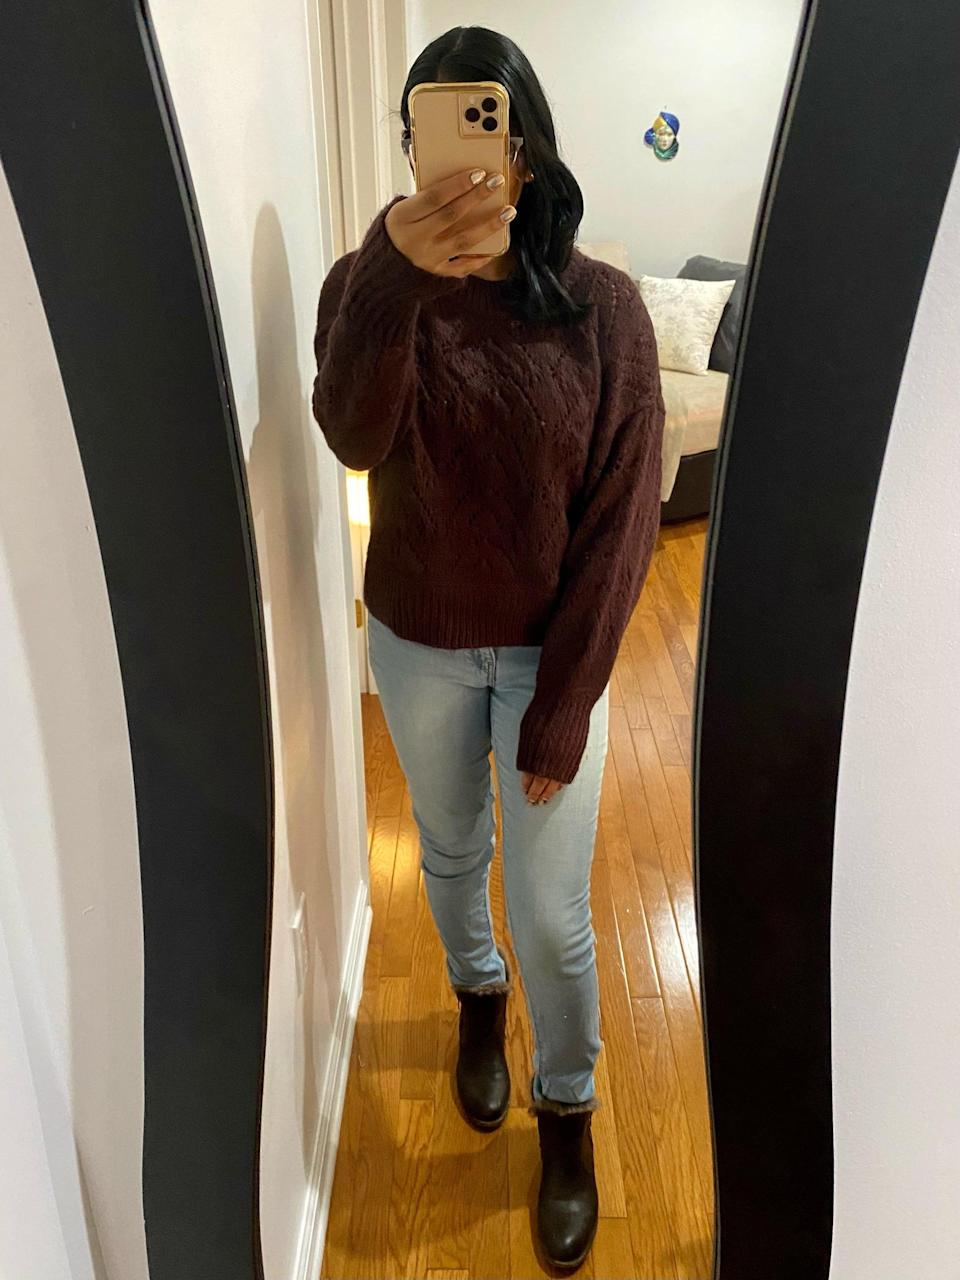 "<p><strong>The Style:</strong> <span>Old Navy Cozy Pointelle-Knit Crew-Neck Sweater</span> ($38, origially $40)</p> <p><strong>The Review:</strong> ""This sweater is incredibly comfortable! I love that I can wear it as work from home loungewear as well as out to dinner or a pumpkin patch. It's convenient to be able to dress it up or down. It's pretty thick and warm so it's perfect for the upcoming chilly weather - coming from someone who lives in the northeast. It comes in gorgeous earth-toned autumn colors. I chose a size XS and it's a loose, oversized fit. This definitely embodies cozy fall vibes."" - Anvita Reddy, editorial coordinator, Shop</p>"